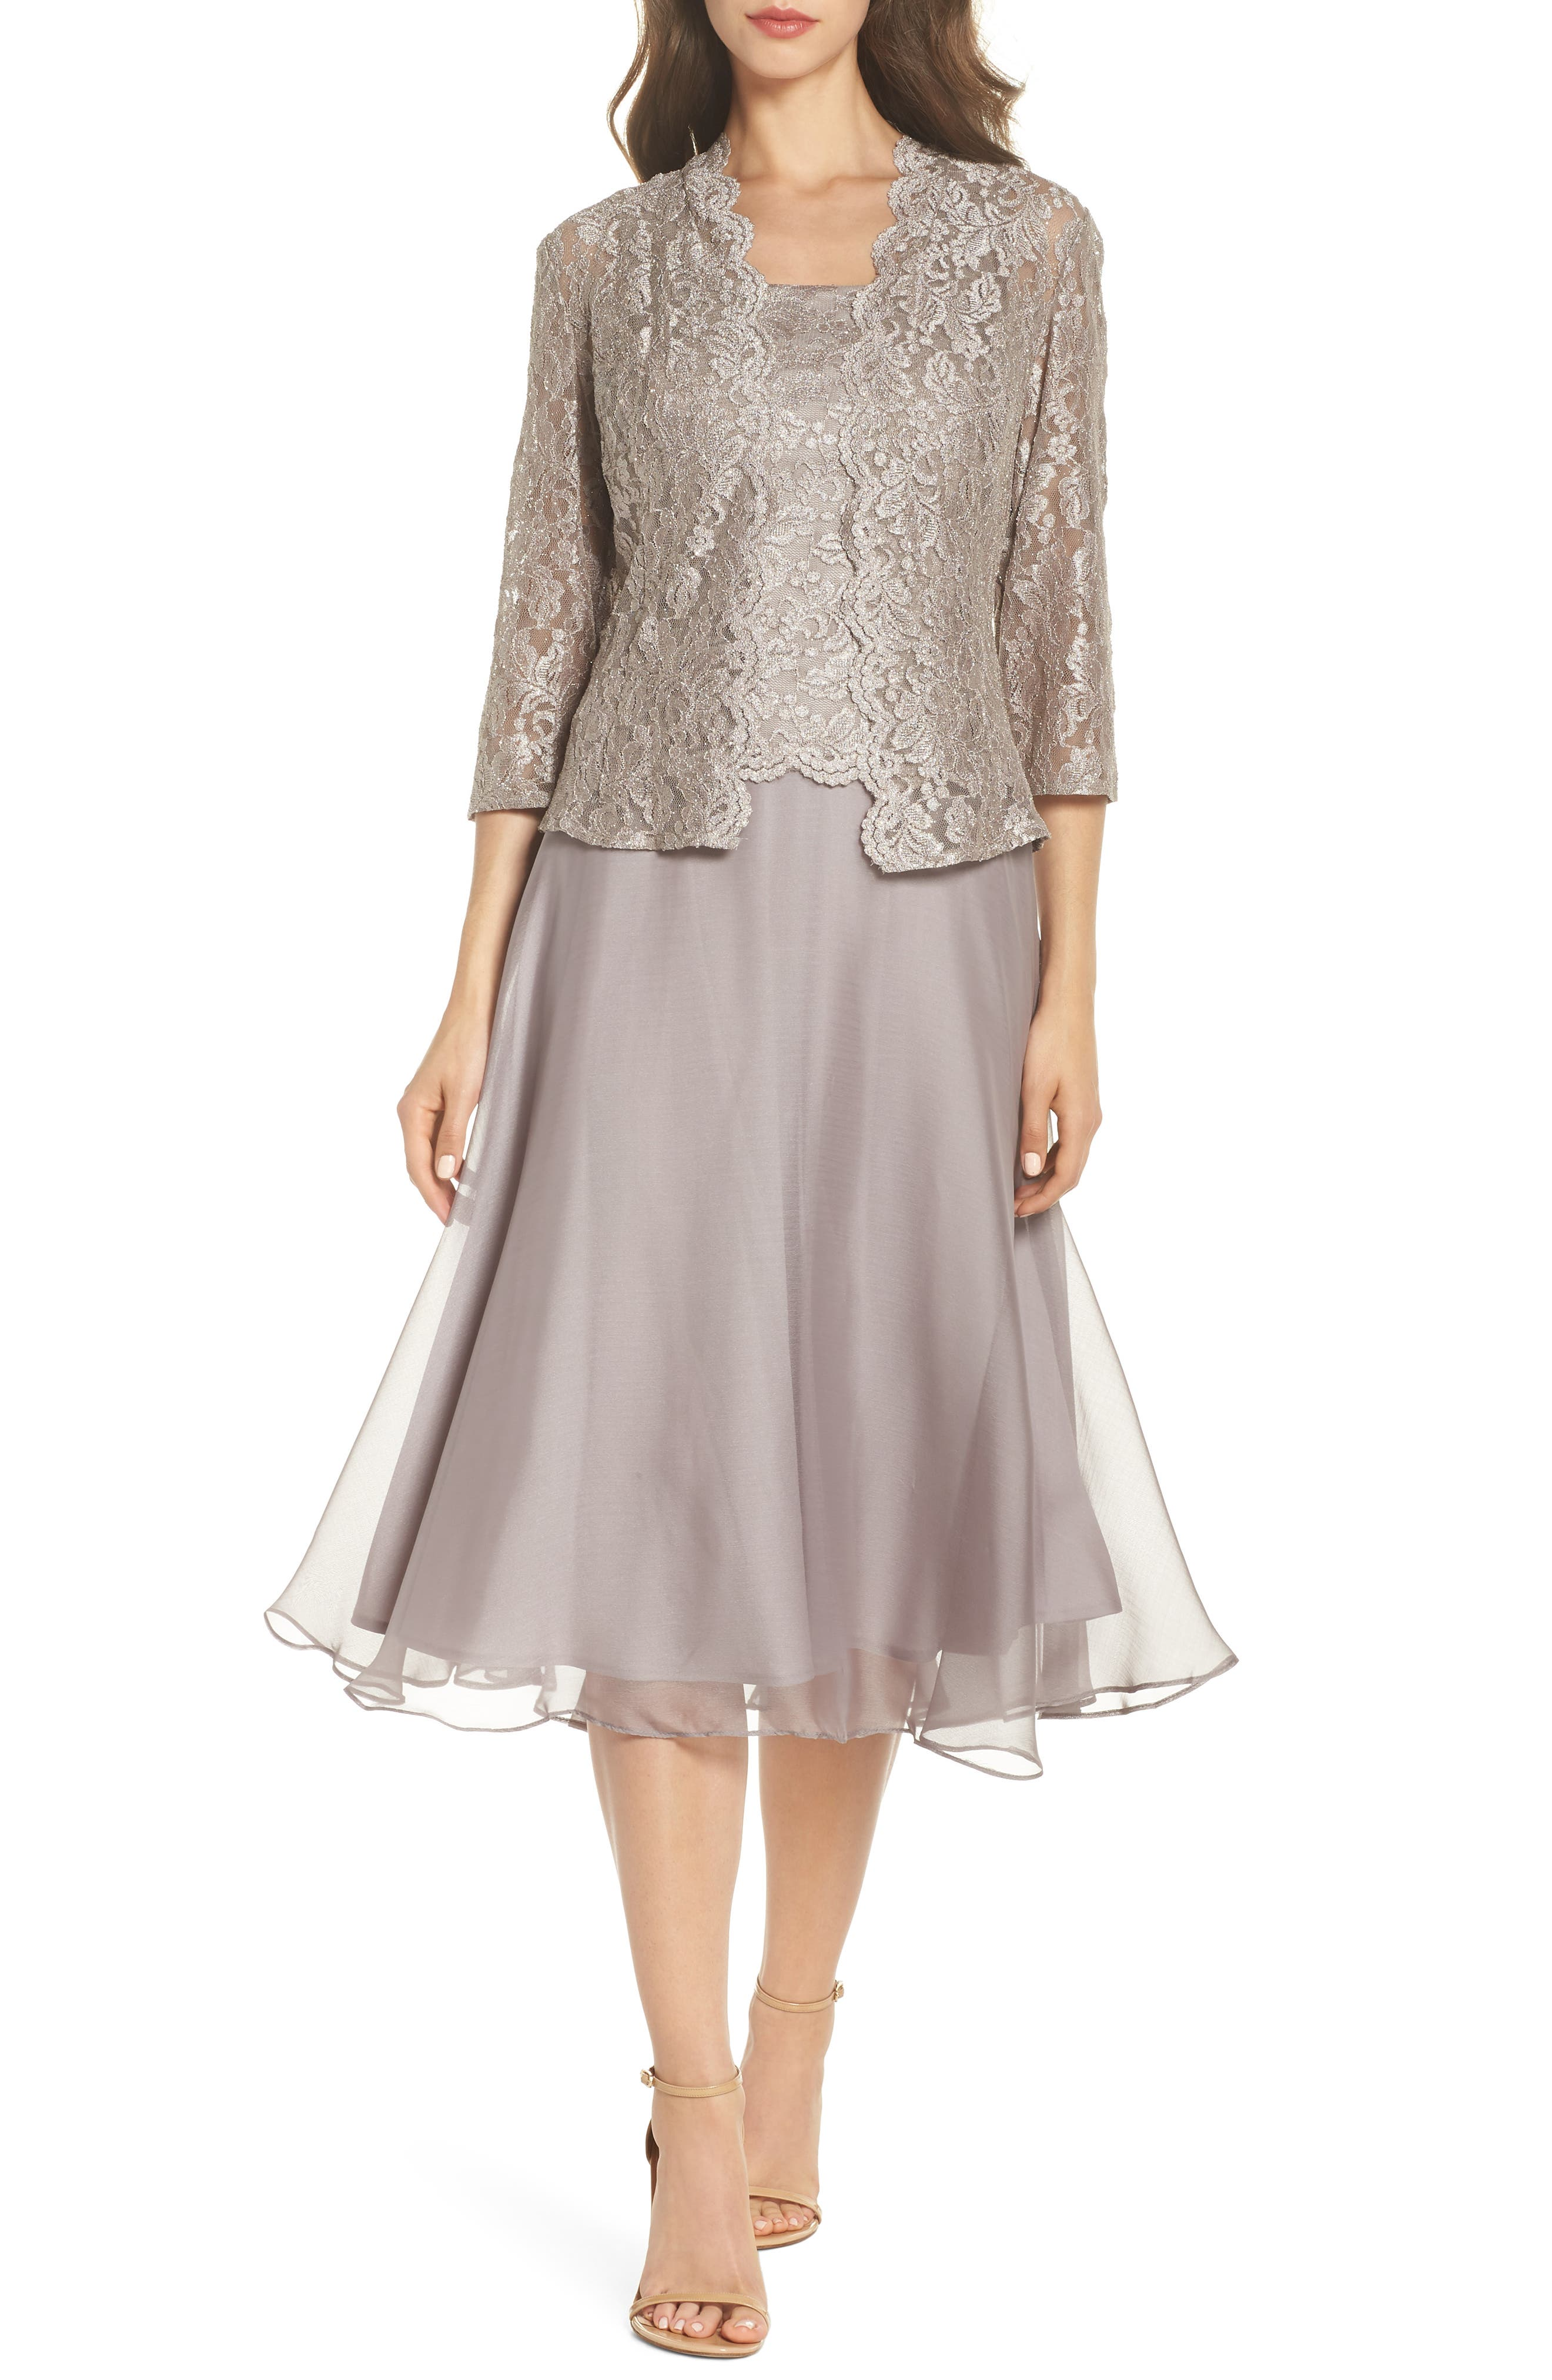 Petite Alex Evenings Lace Bodice Tea Length Dress With Jacket, Grey